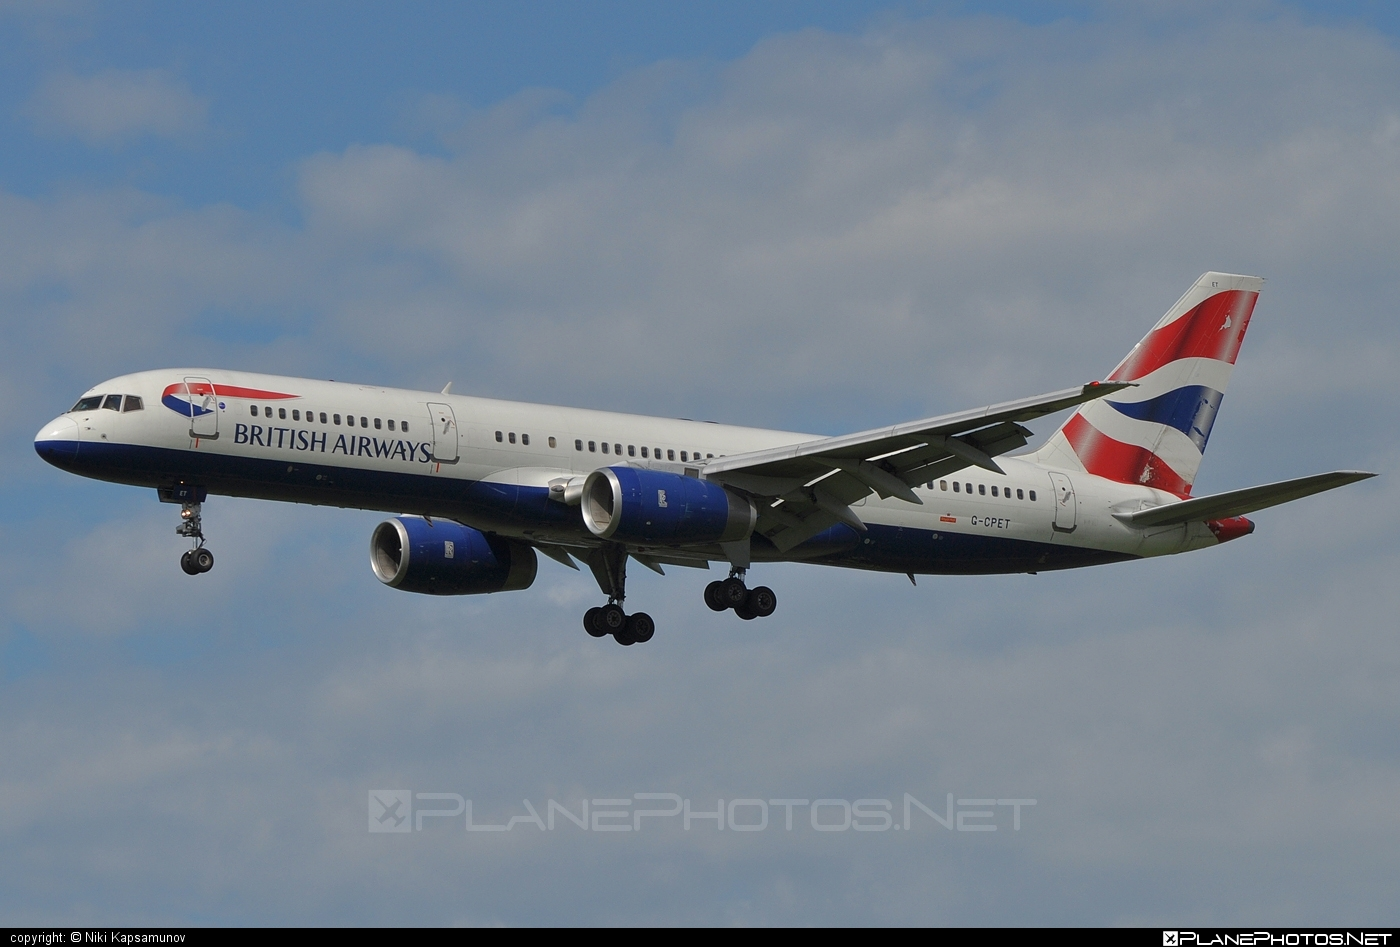 Boeing 757-200 - G-CPET operated by British Airways #b757 #boeing #boeing757 #britishairways